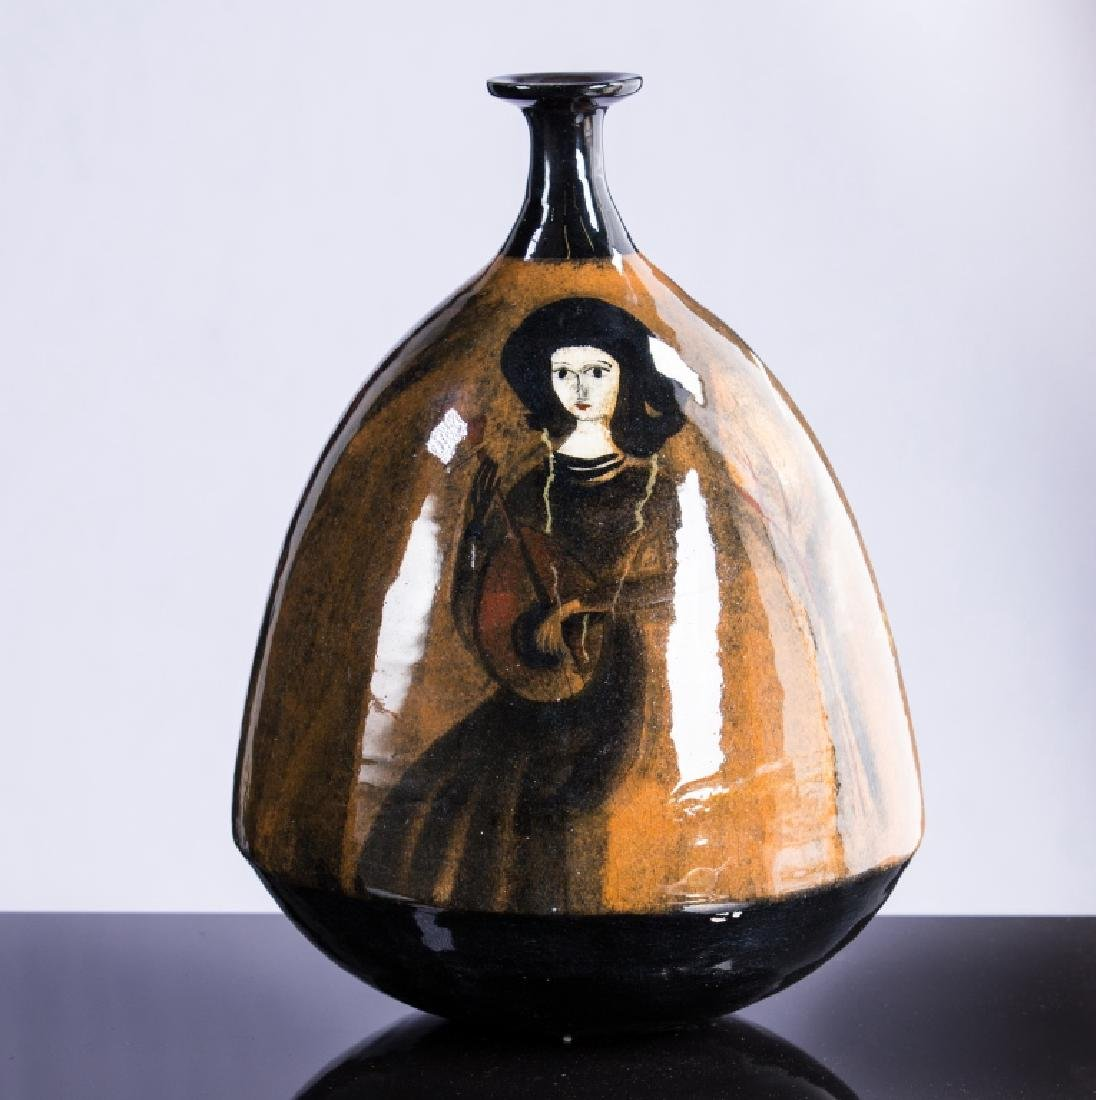 POLIA PILLIN (1909-1992) ART POTTERY VASE